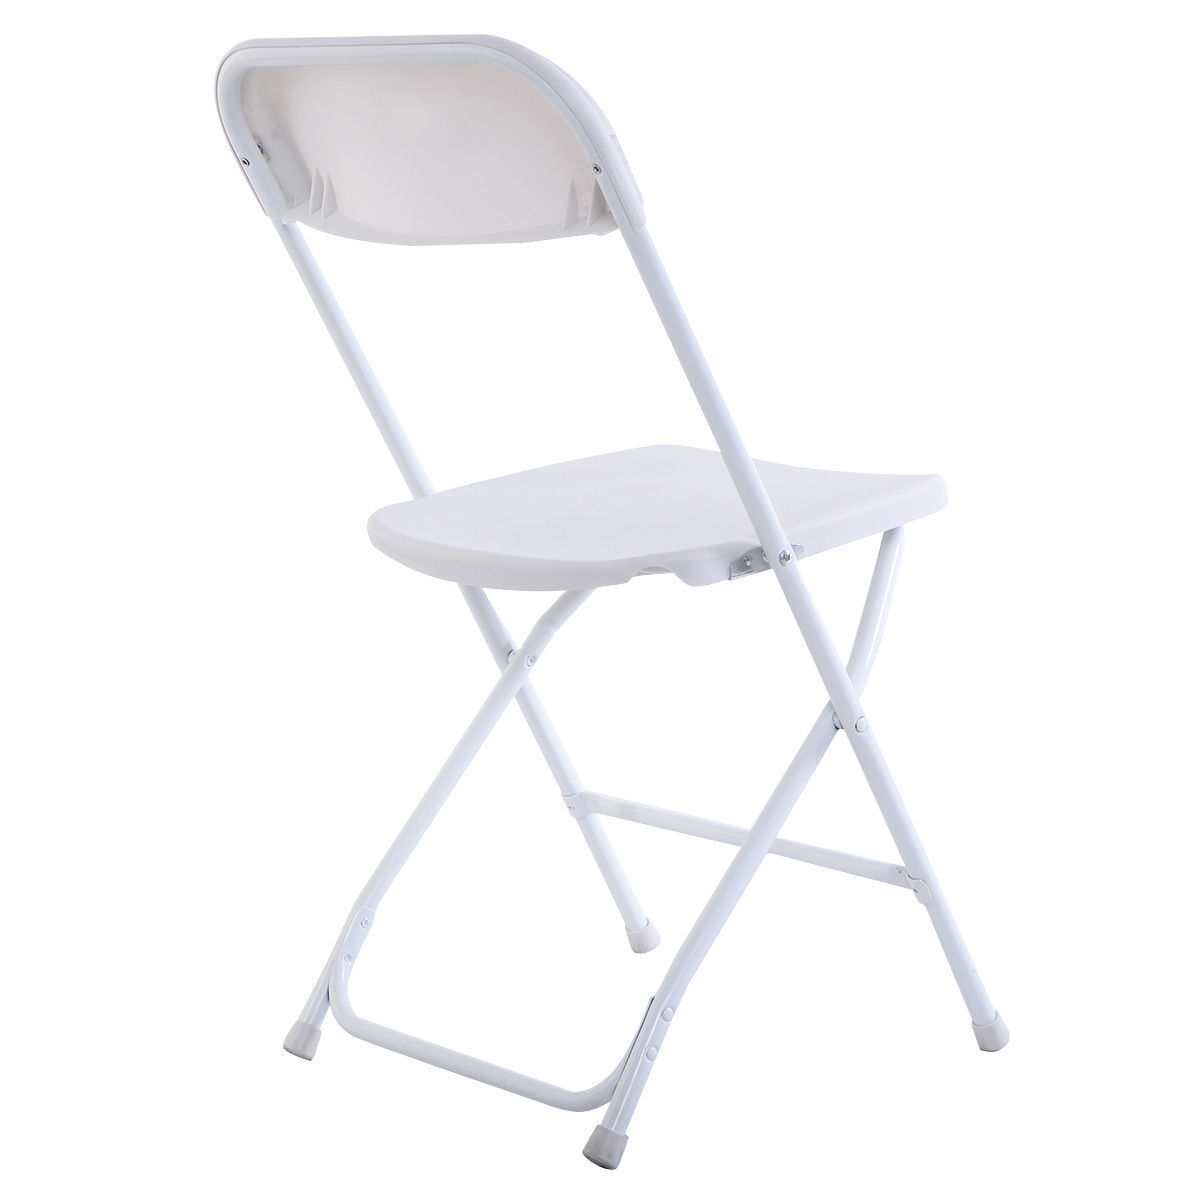 5Pcs New Commercial White Plastic Folding Chairs Stackable